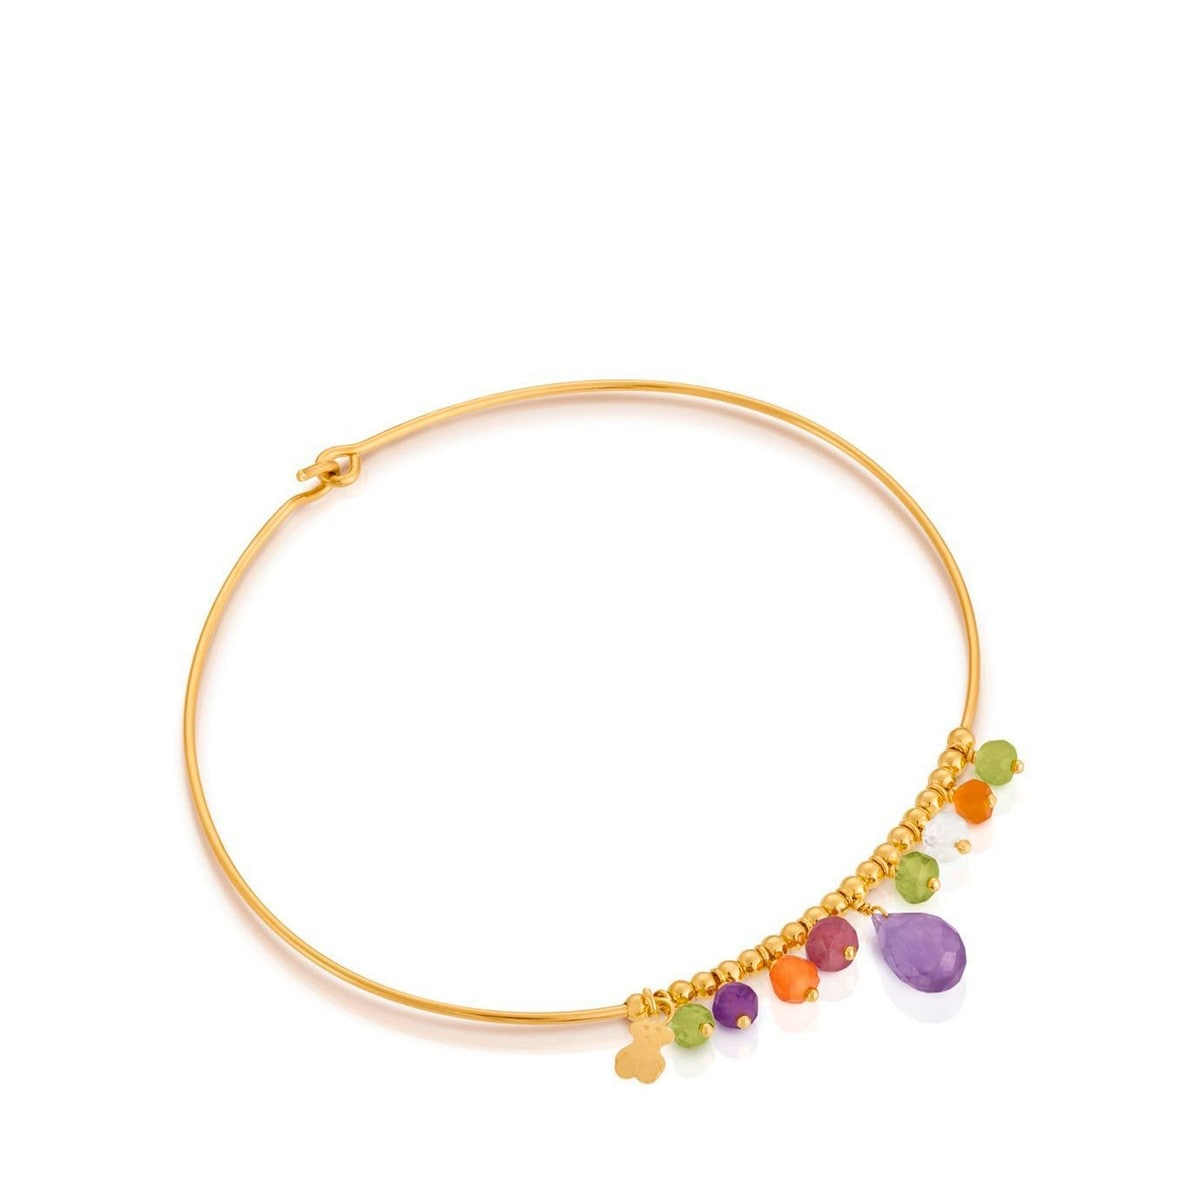 Gold Caprice Bracelet with Gemstones